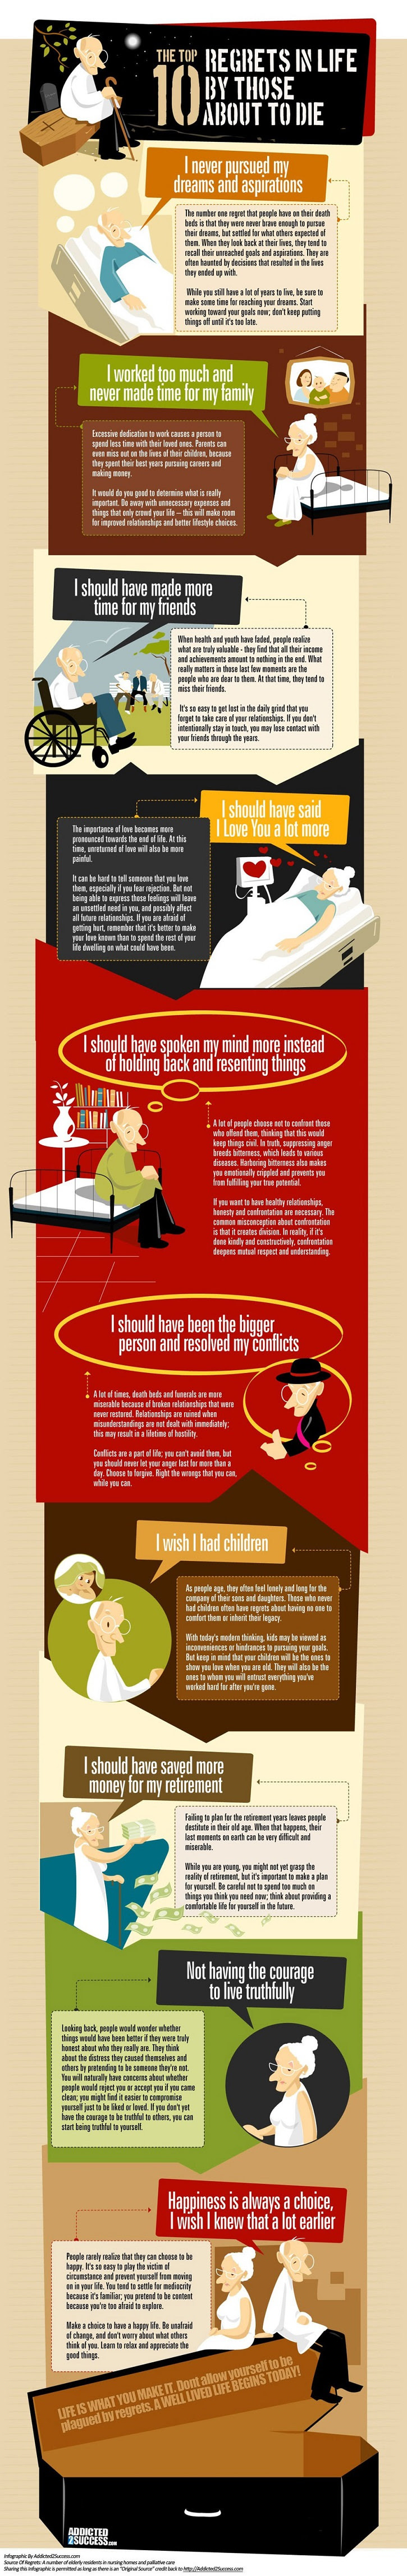 top 10 regrets infographic